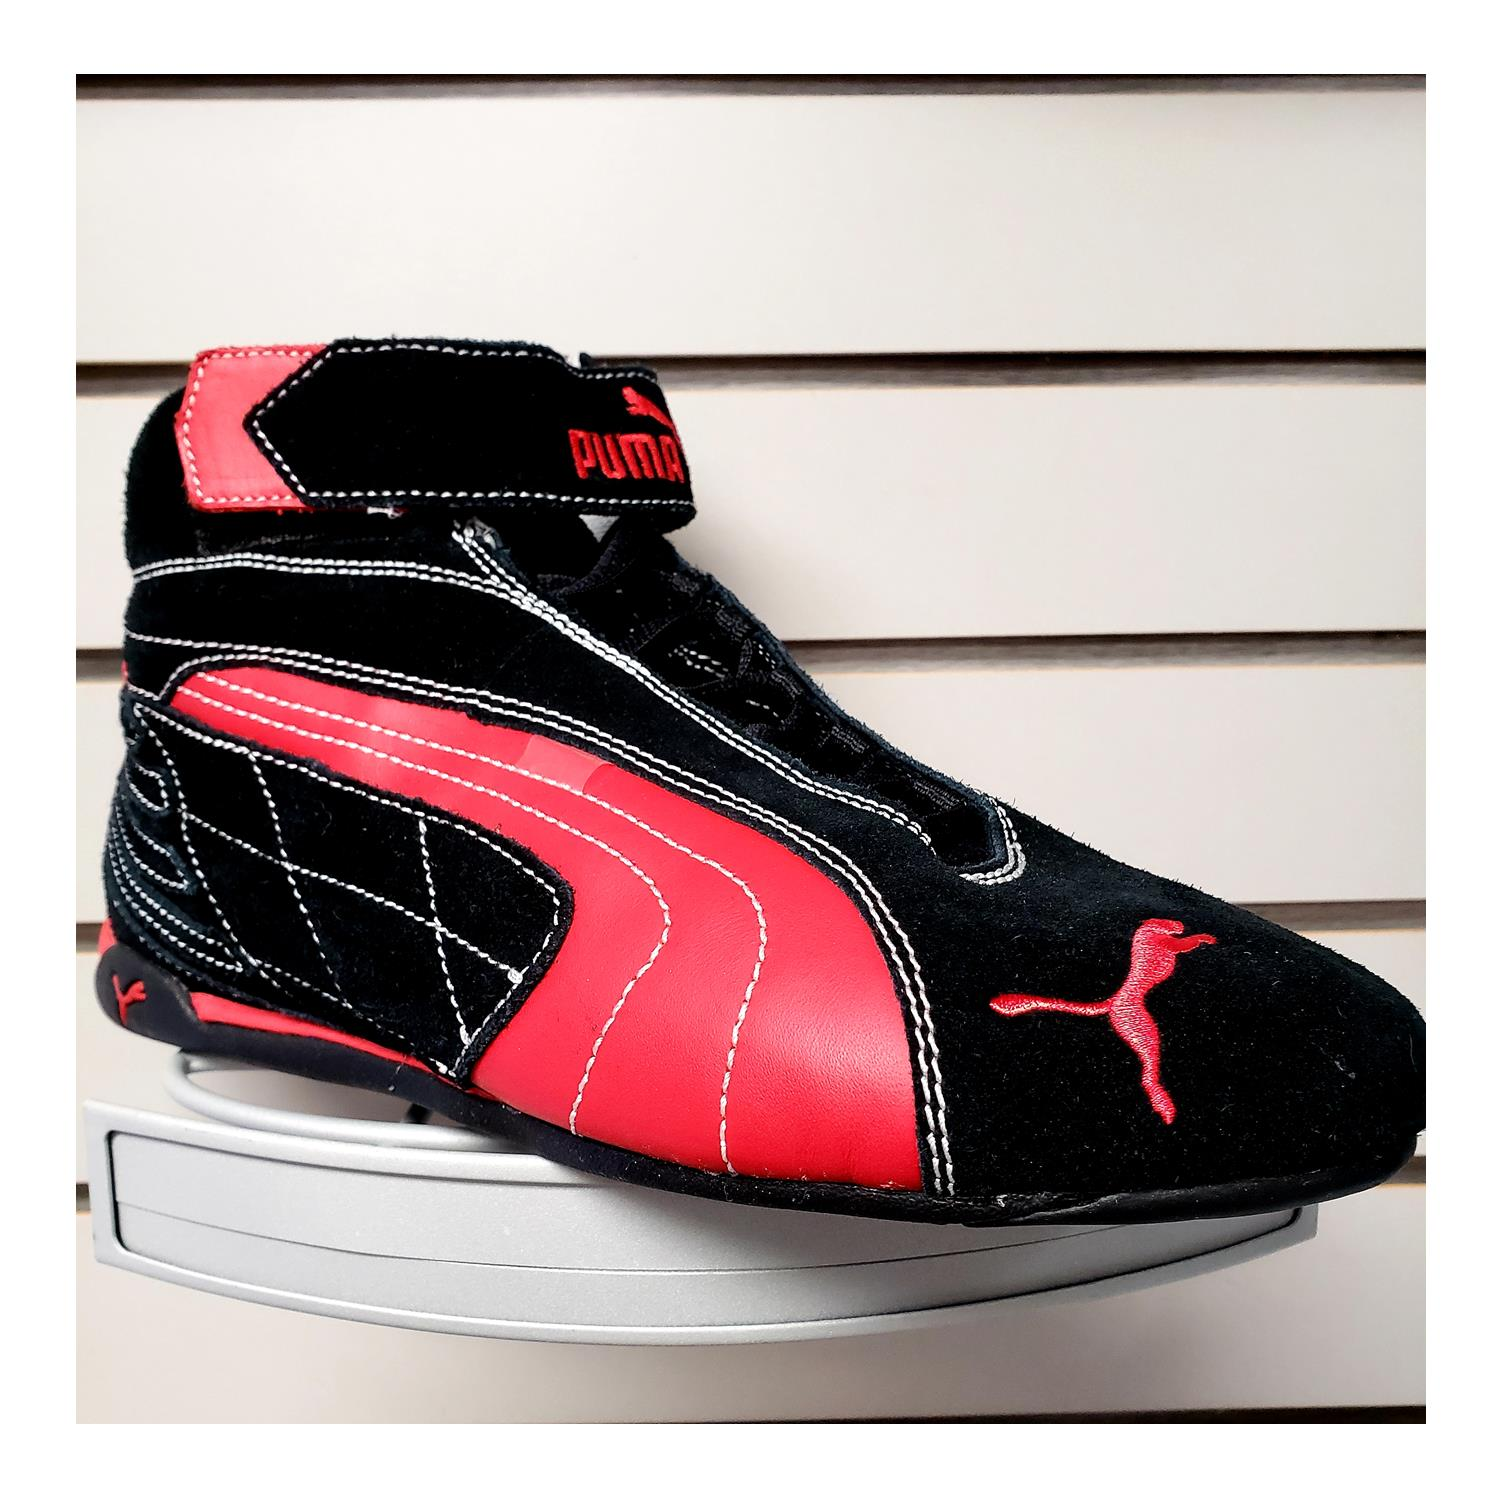 code promo 621db 2e765 TRACK FIRST-Sales, Consignment, Clearance, Special Offers, Discounts, Black  Friday-PUMA REPLI CAT MId Kart shoe